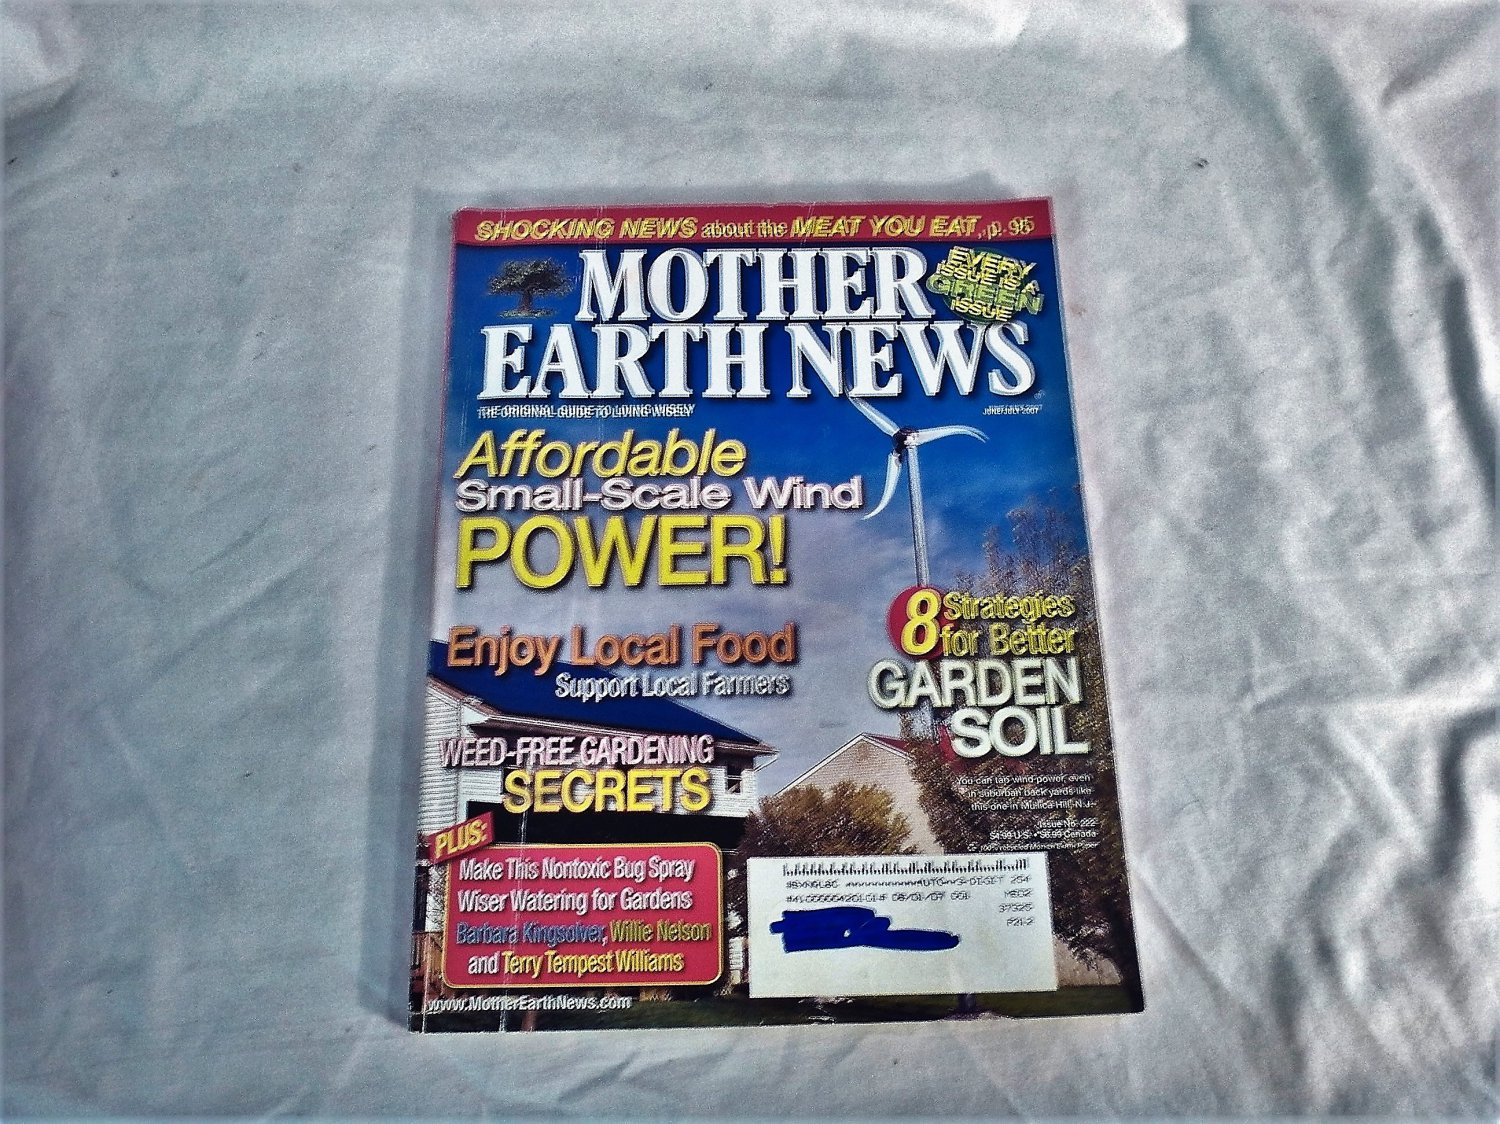 Mother Earth News Affordable Small Scale Wind Power June / July 2007 Issue 222 (G2)